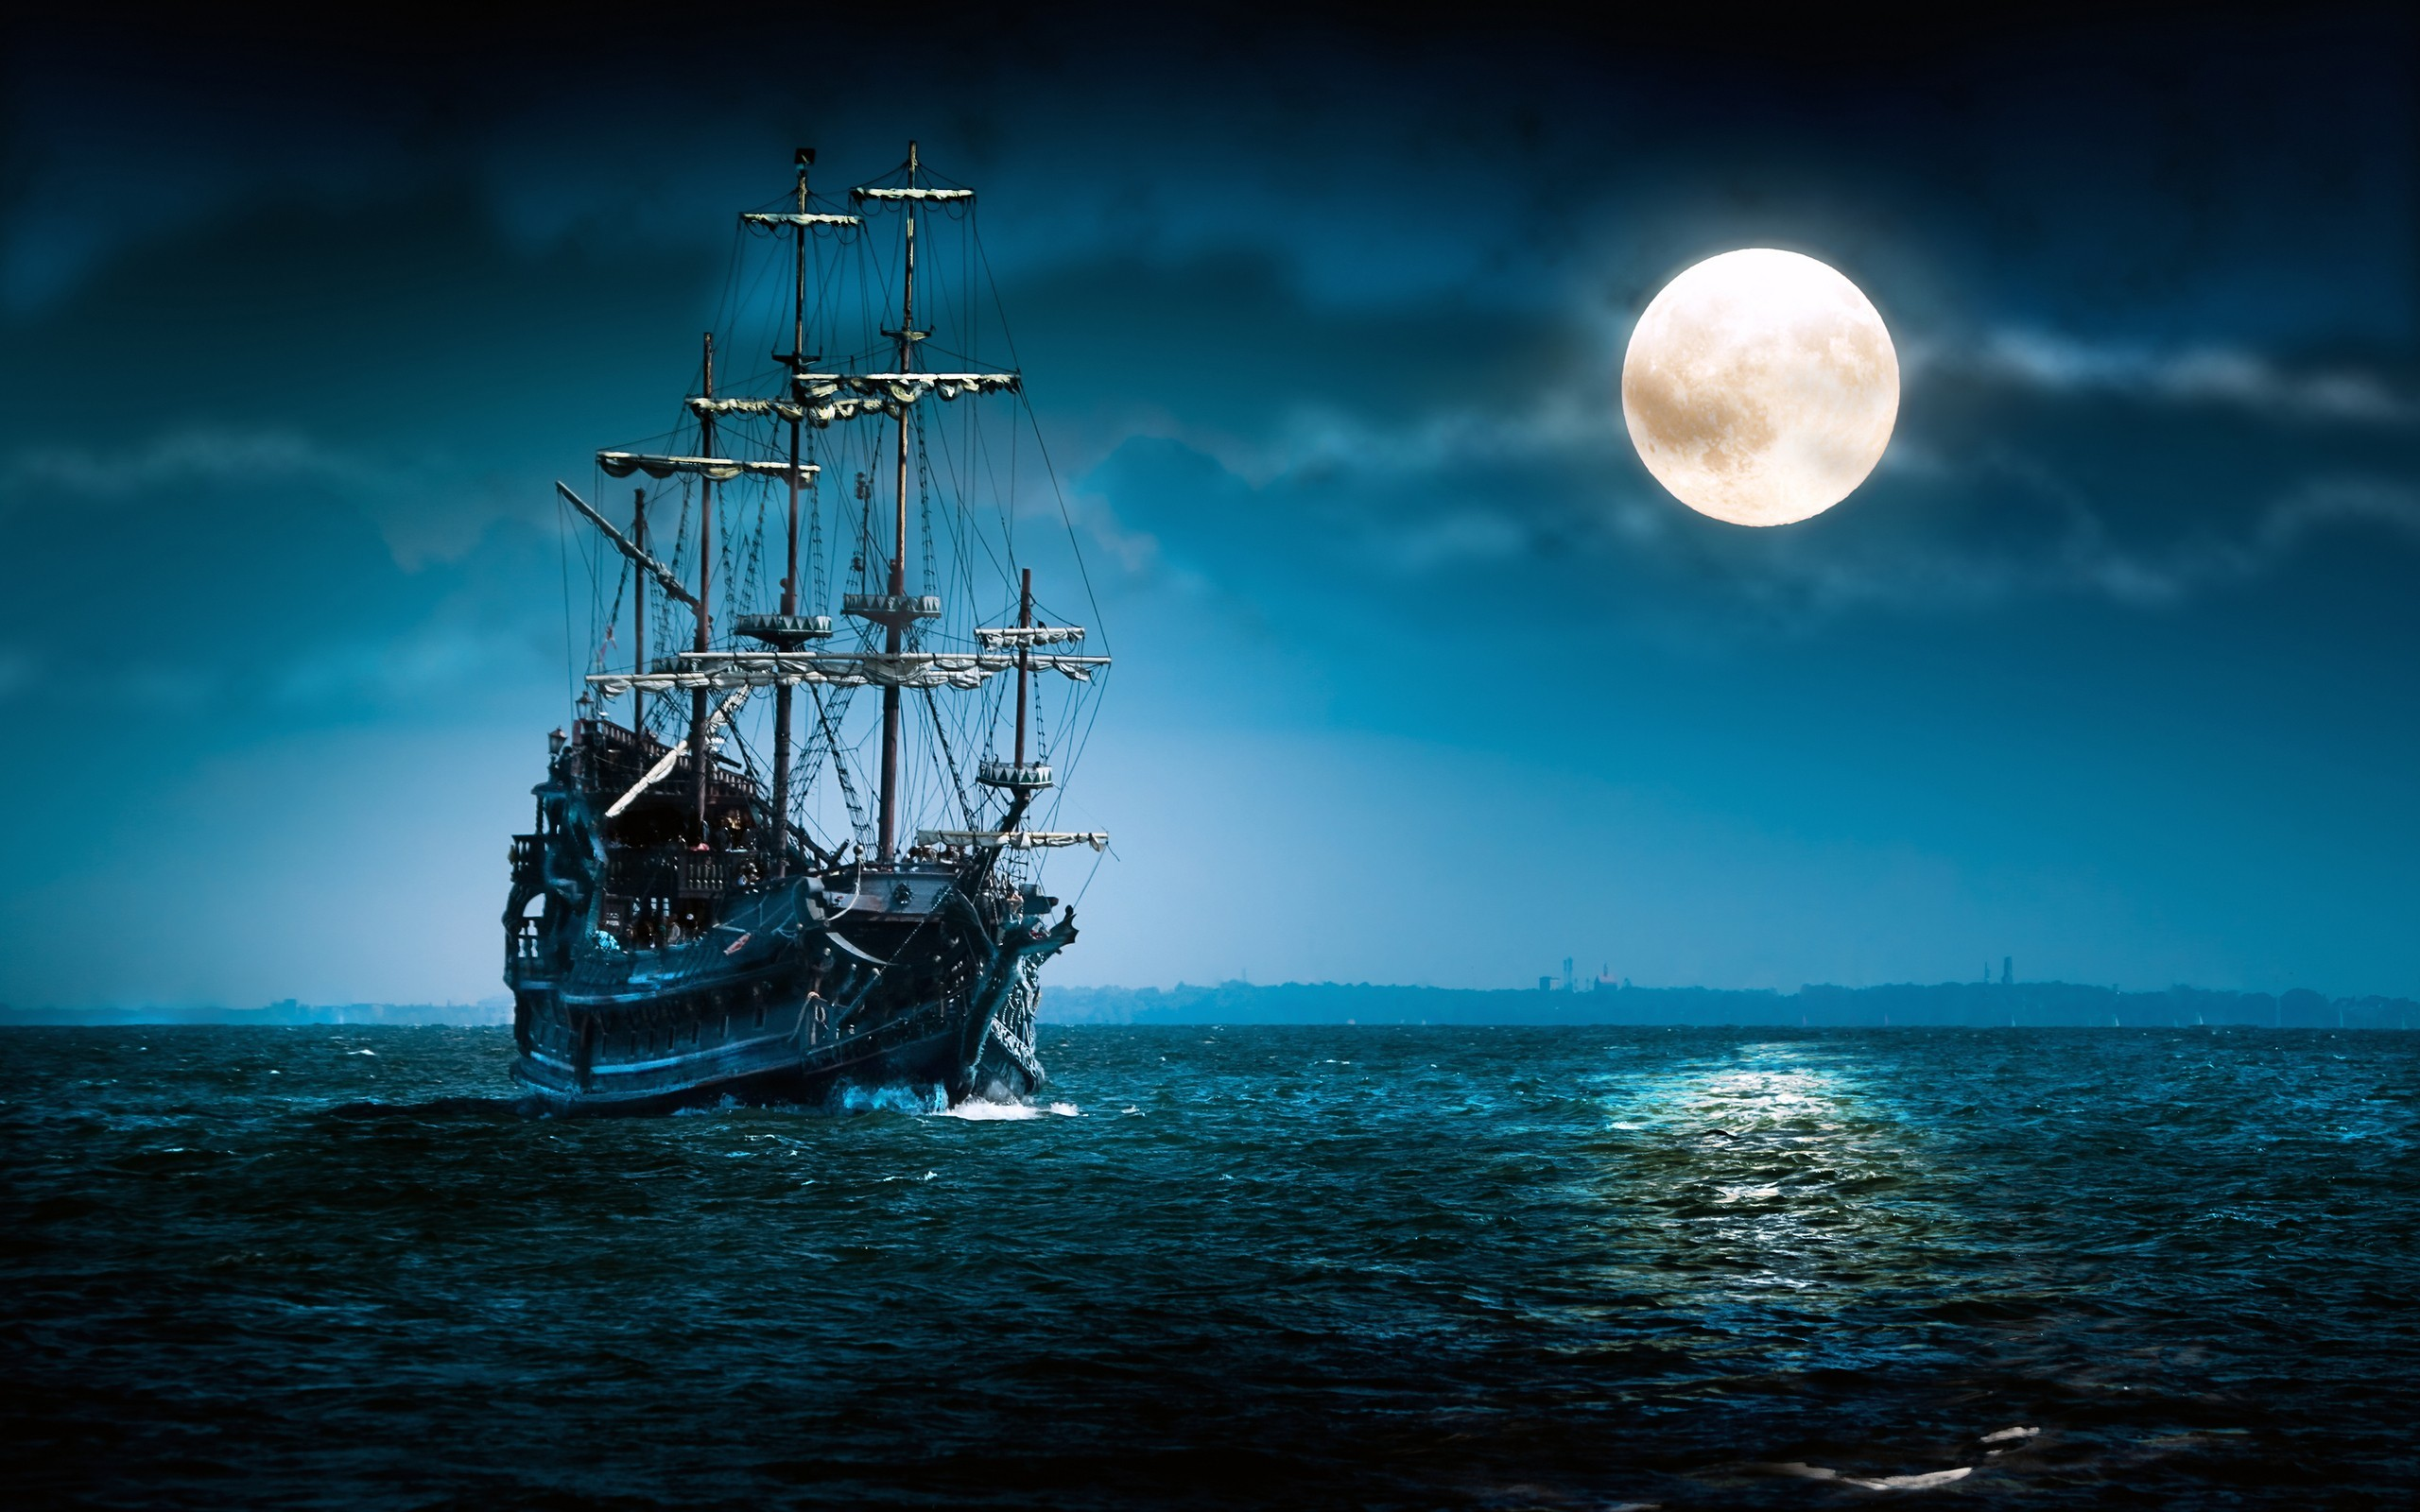 Ships Images Wallpaper